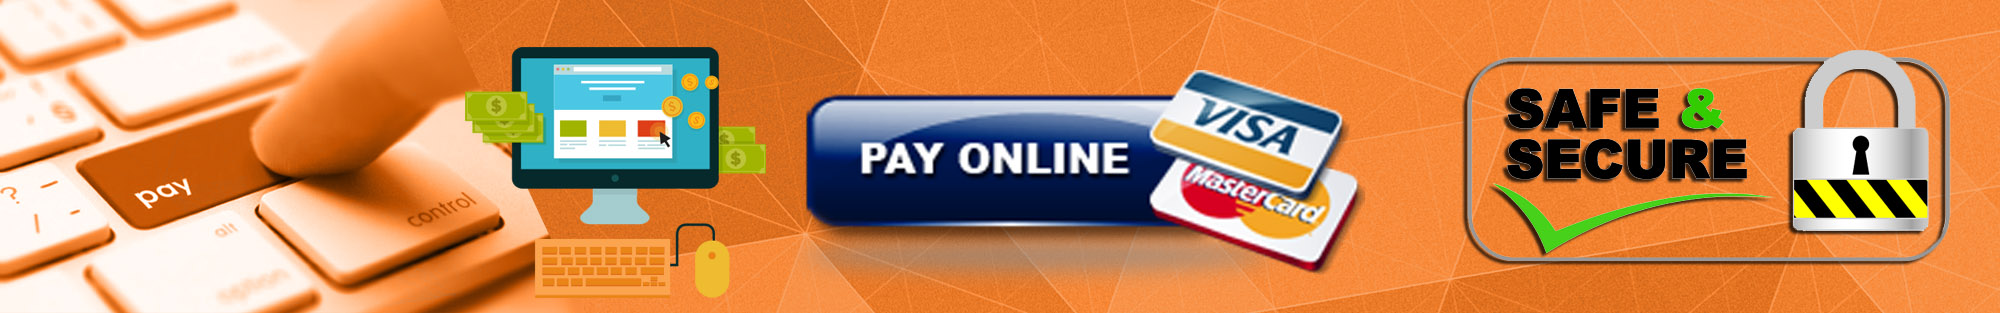 Pay online - technowebsy